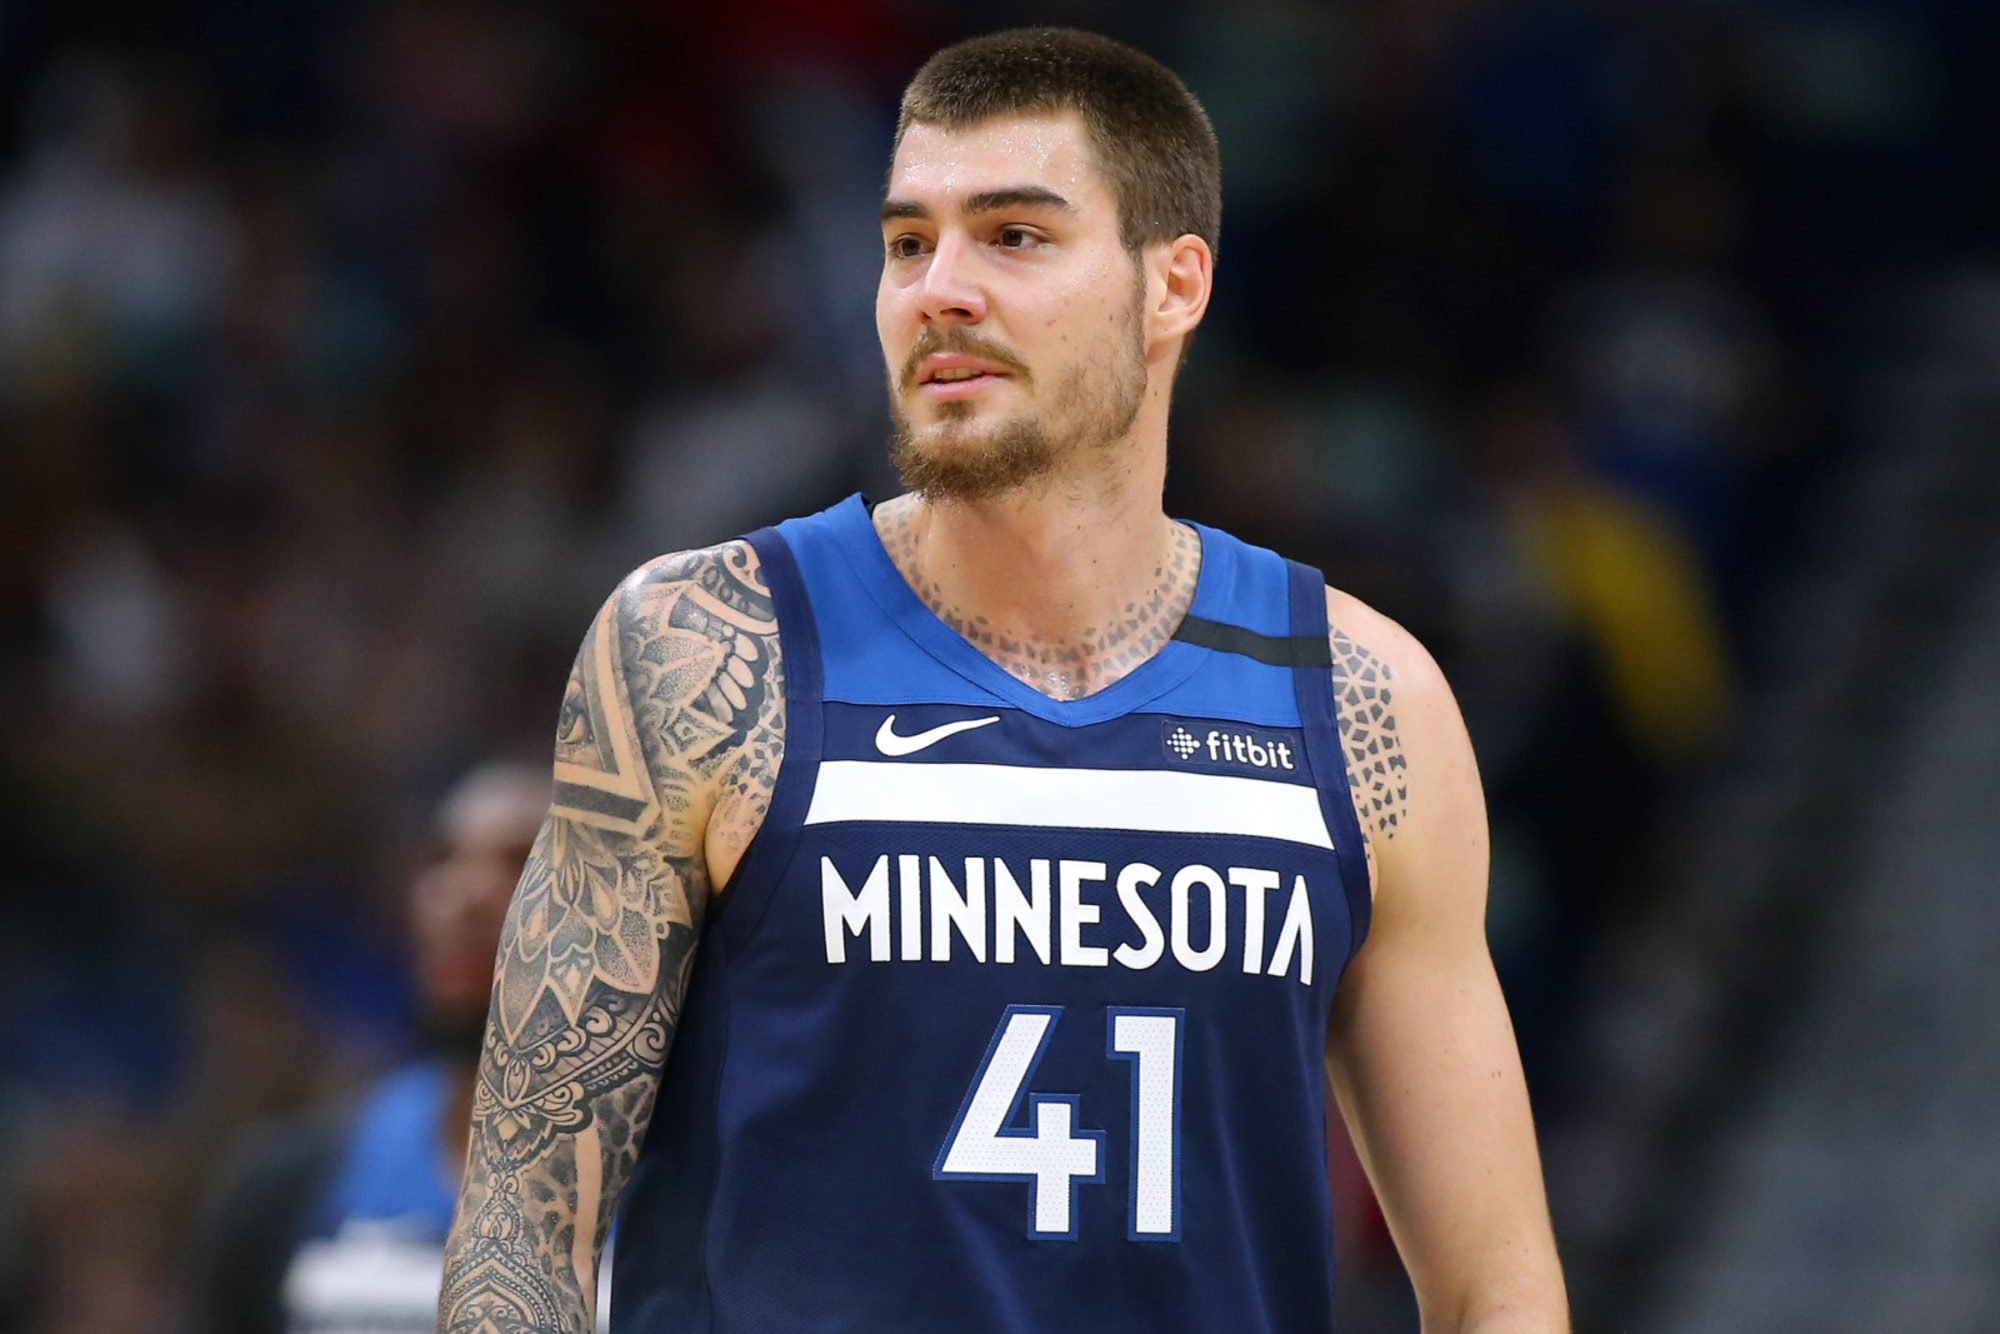 Celtics Agree to Trade Kris Dunn and Carsen Edwards to Grizzlies for Juancho Hernangomez